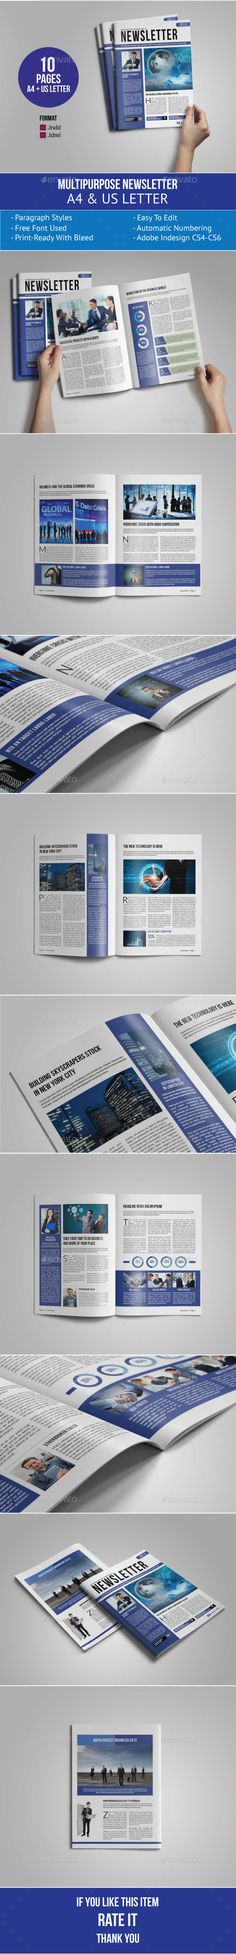 Modern Newsletter Template v03 Newsletter templates, Print - company newsletter template free